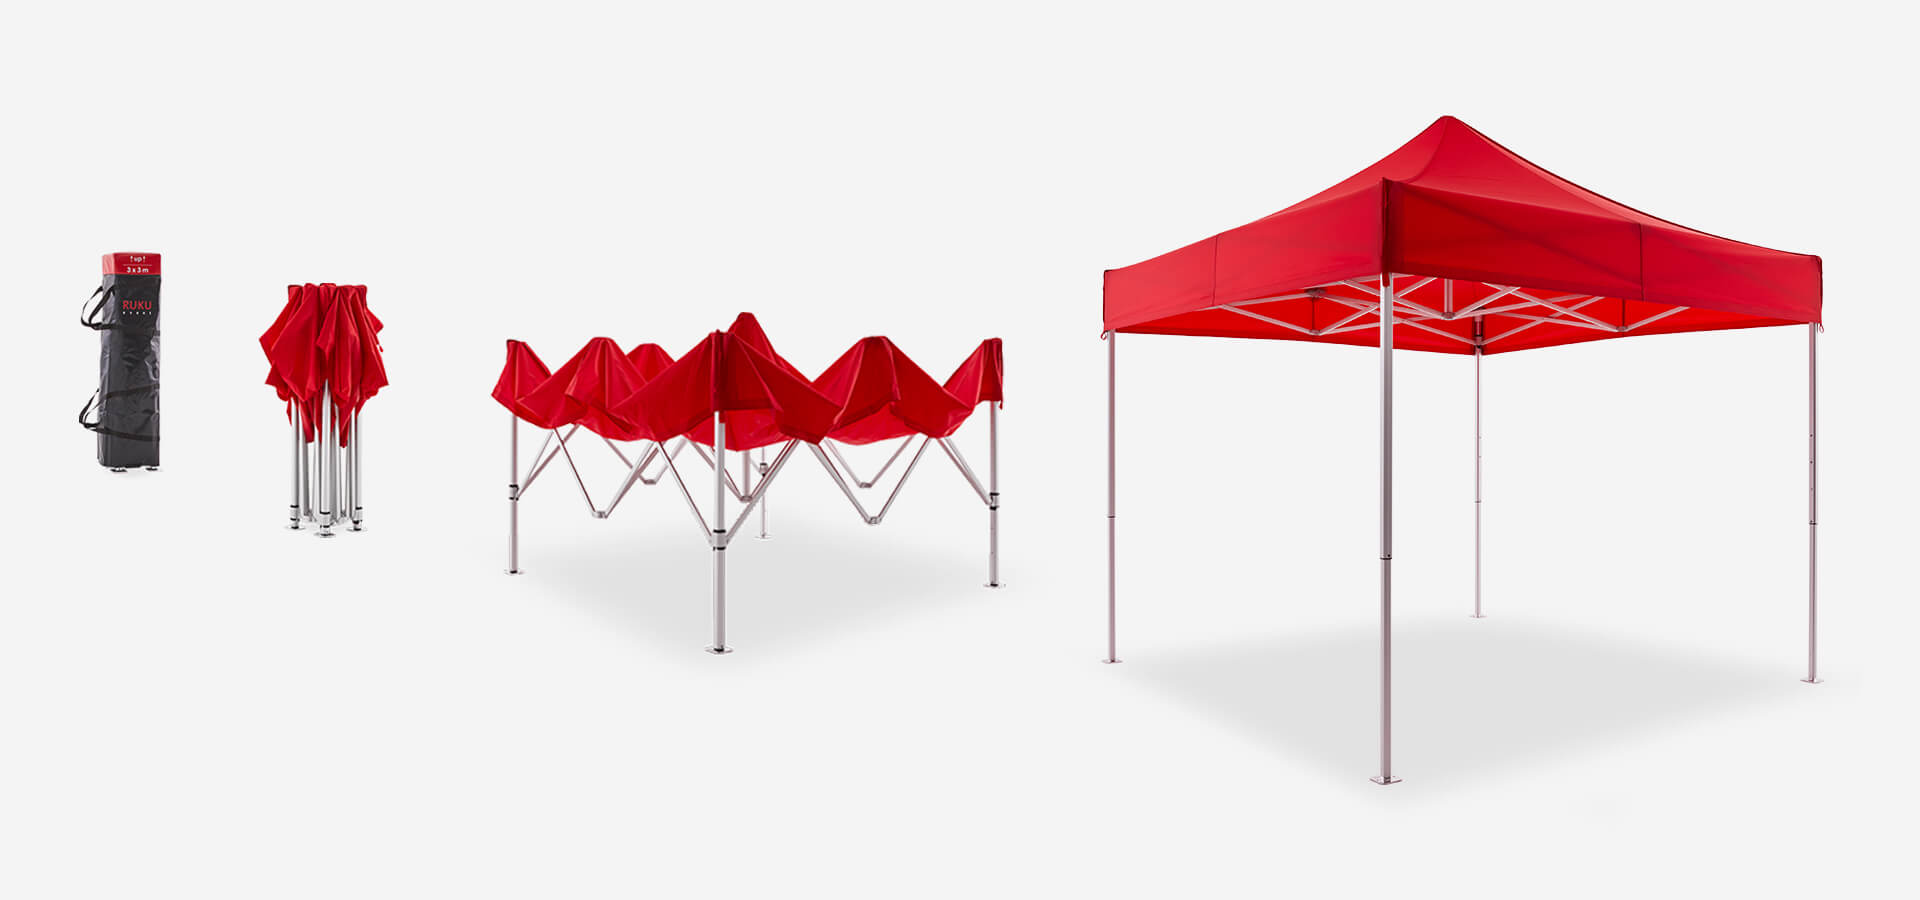 Set-up of the RUKUevent canopy tent in 4 steps: Canopy tent in the transport bag, folded structure, half-opened structure, finished canopy tent.